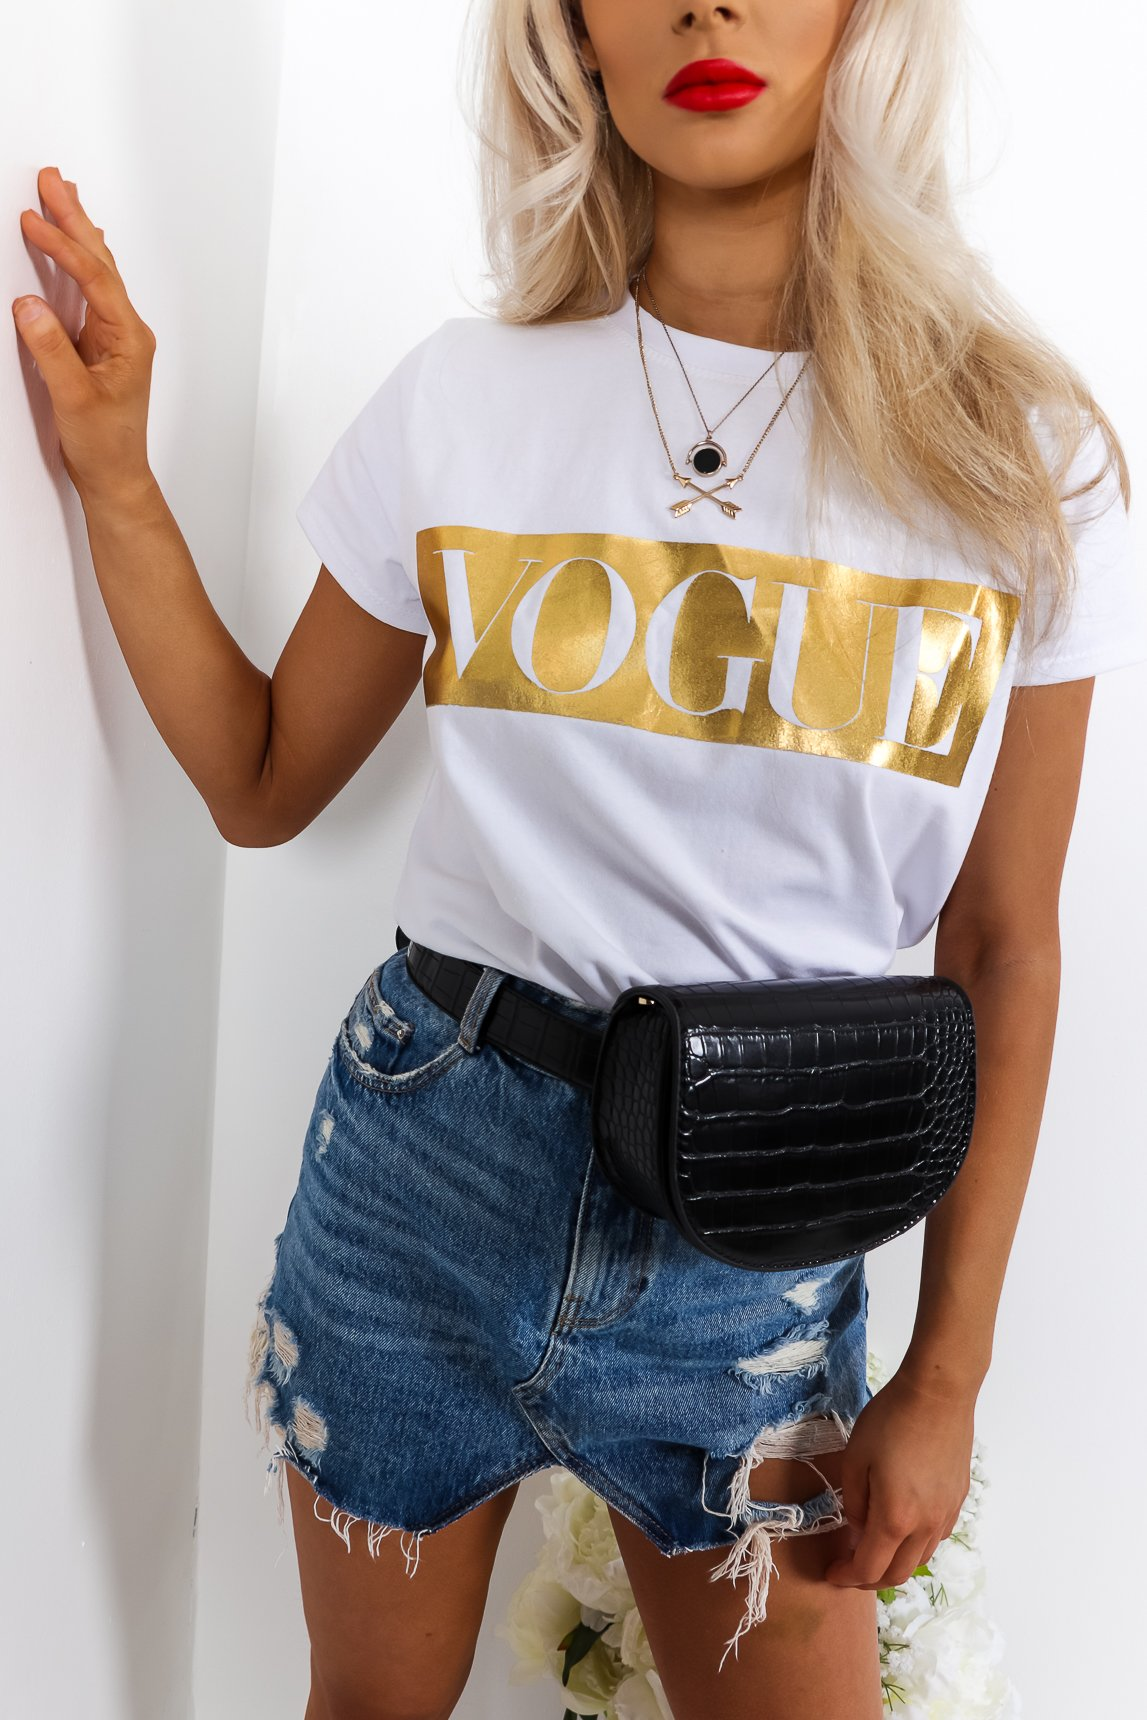 Vogue - T-shirt In GOLD/WHITE